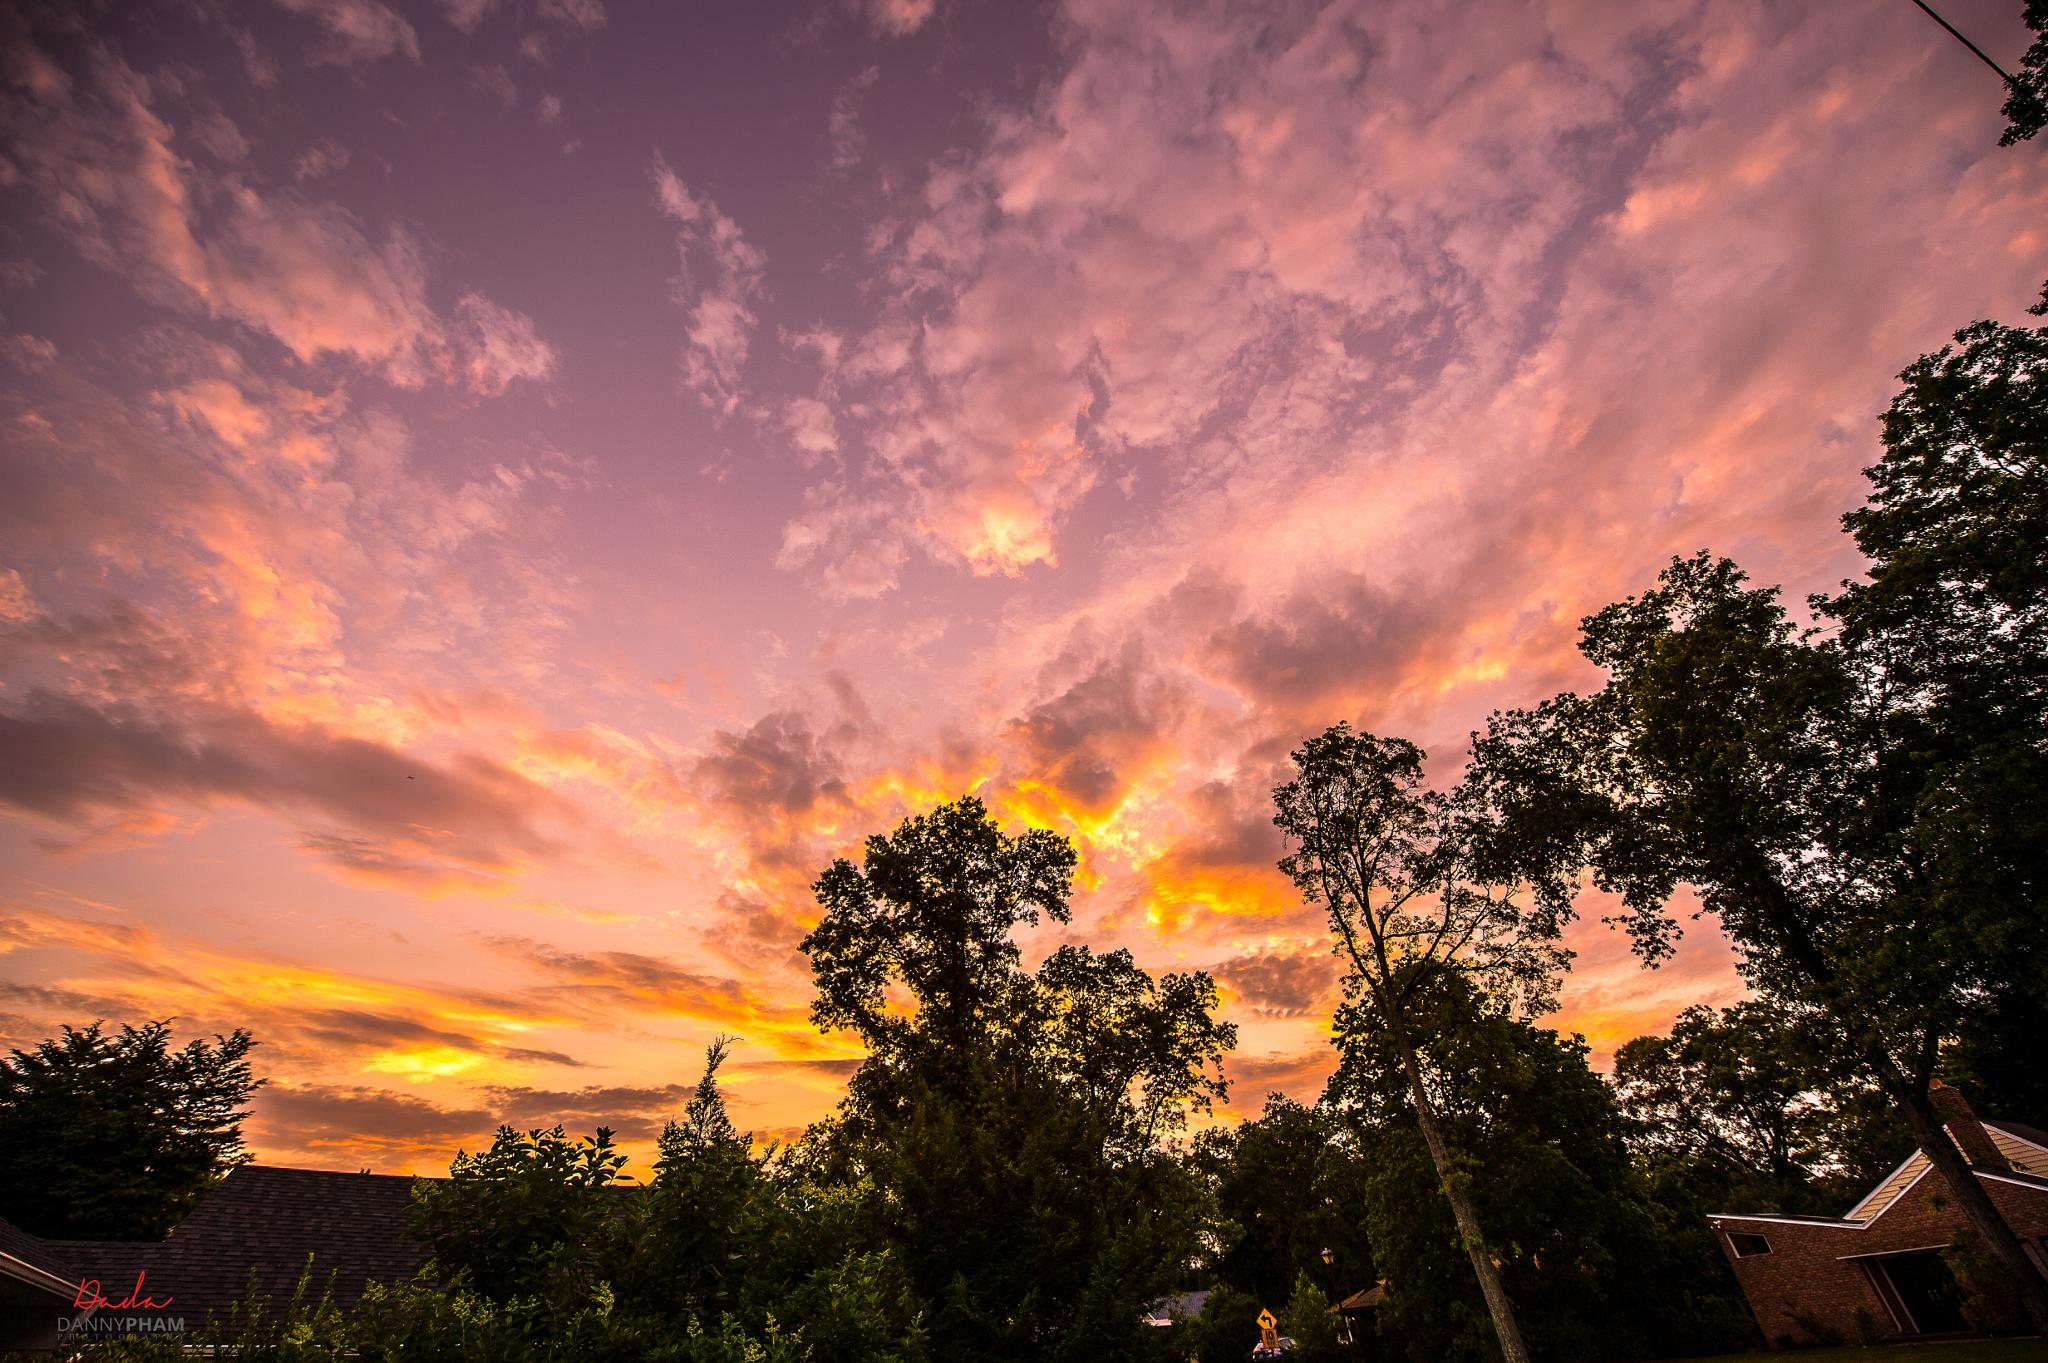 Another beautiful Sunset by Danny Pham